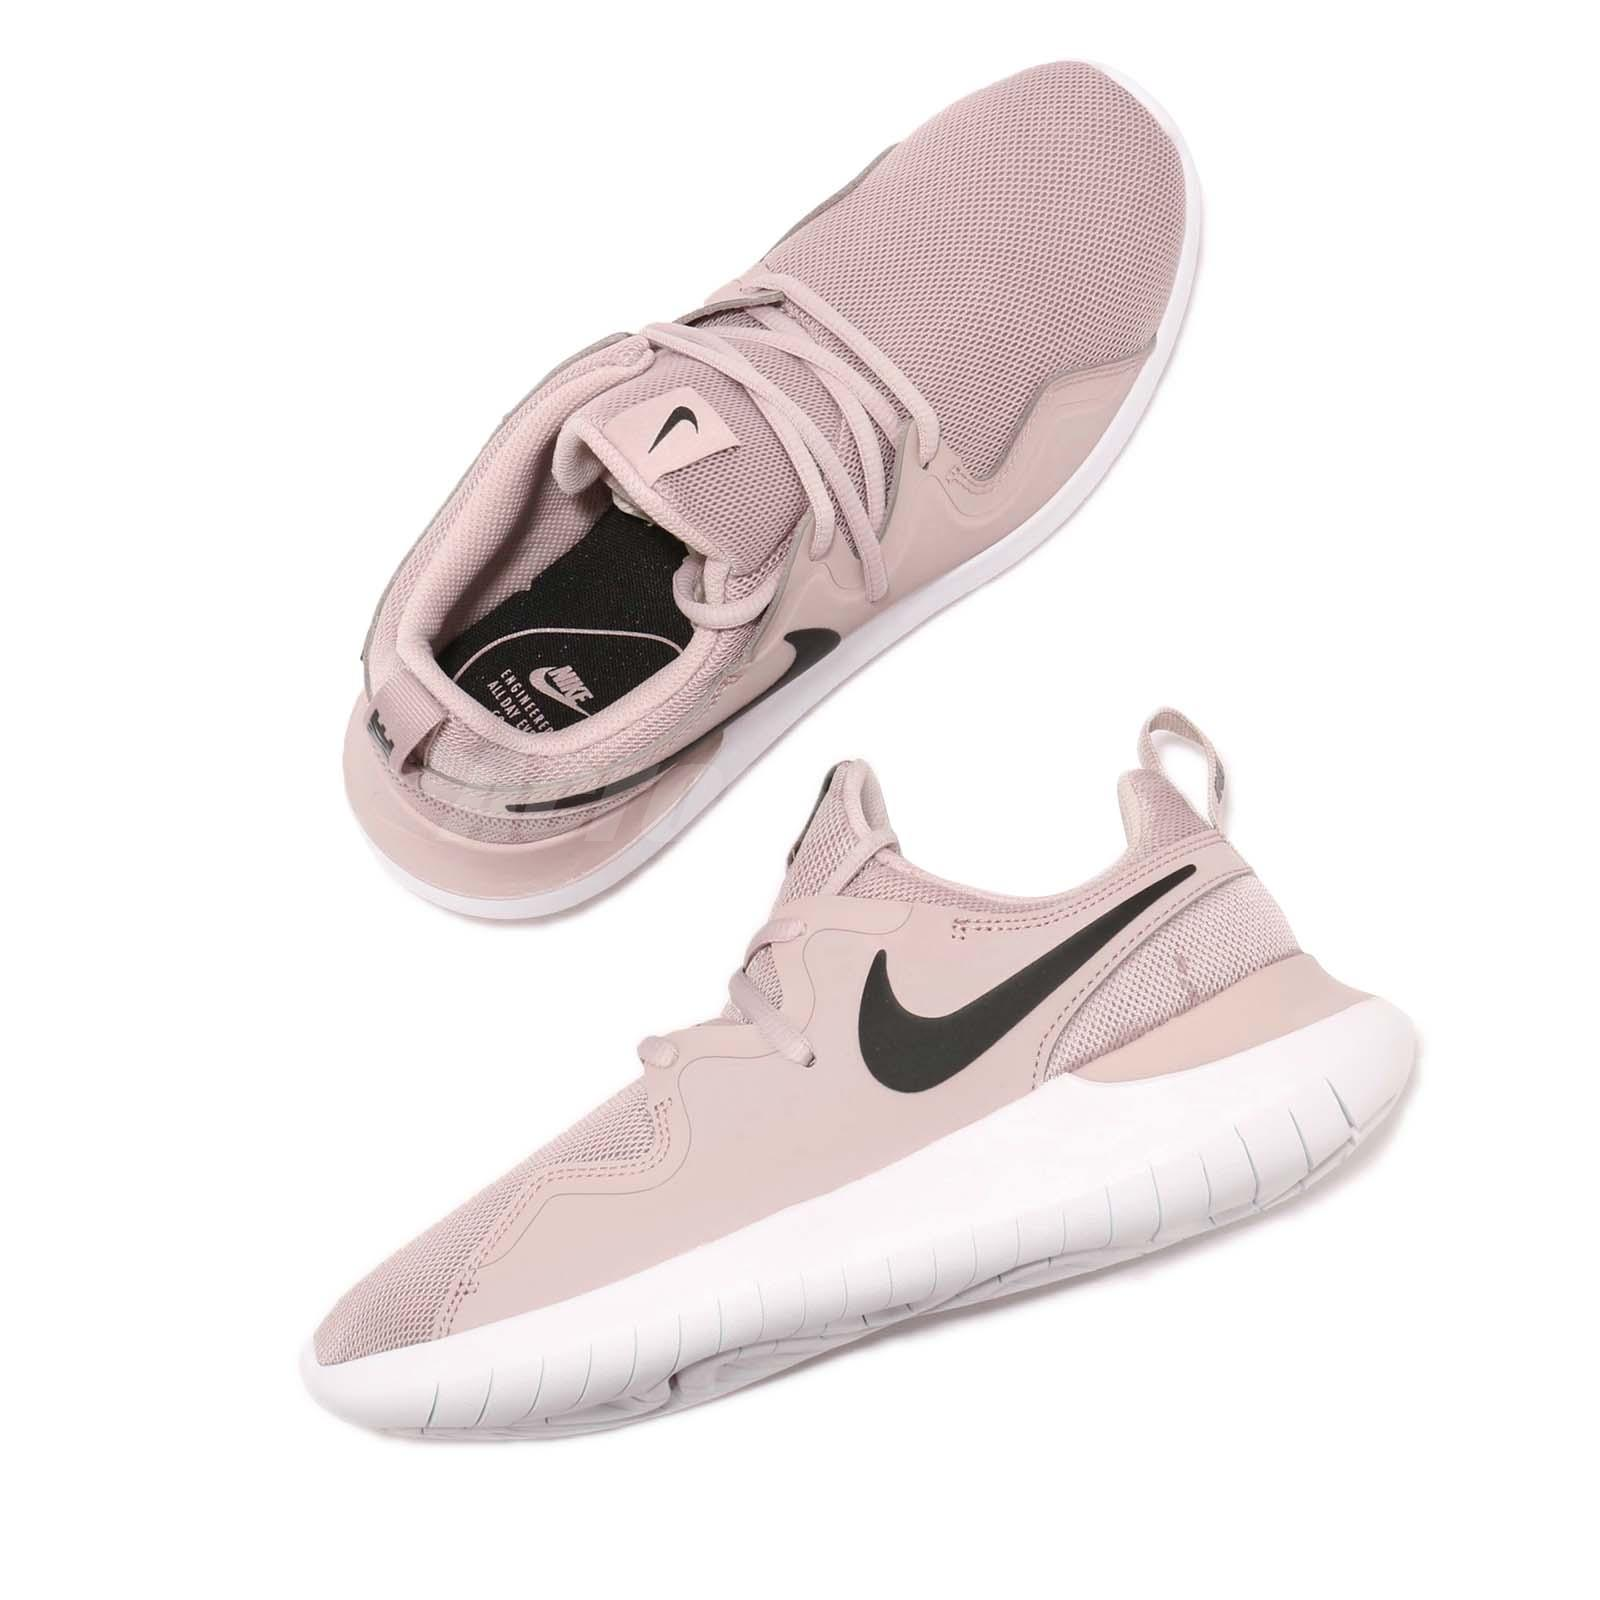 73dbcc286f69a2 Nike Wmns Tessen Particle Rose Black White Women Running Shoe ...